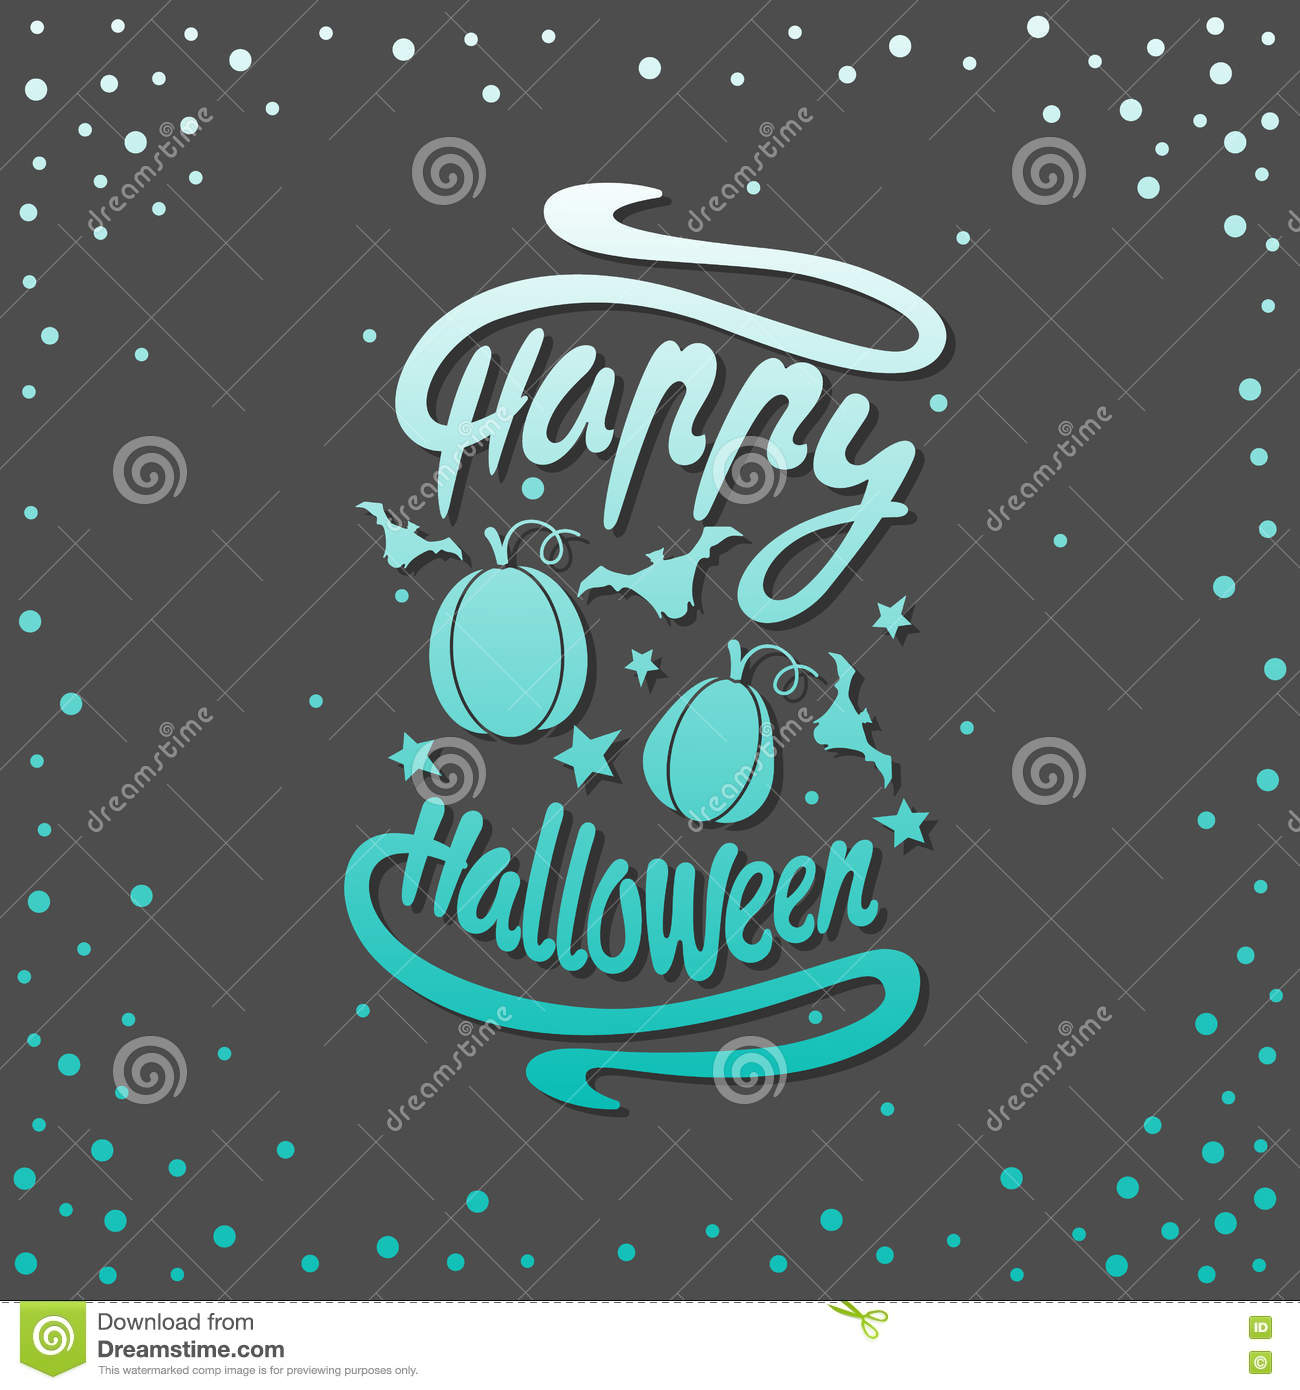 Happy halloween message stock vector illustration of background happy halloween message design background vector illustration this illustration can be used as a greeting invitation poster print on t shirt or bag m4hsunfo